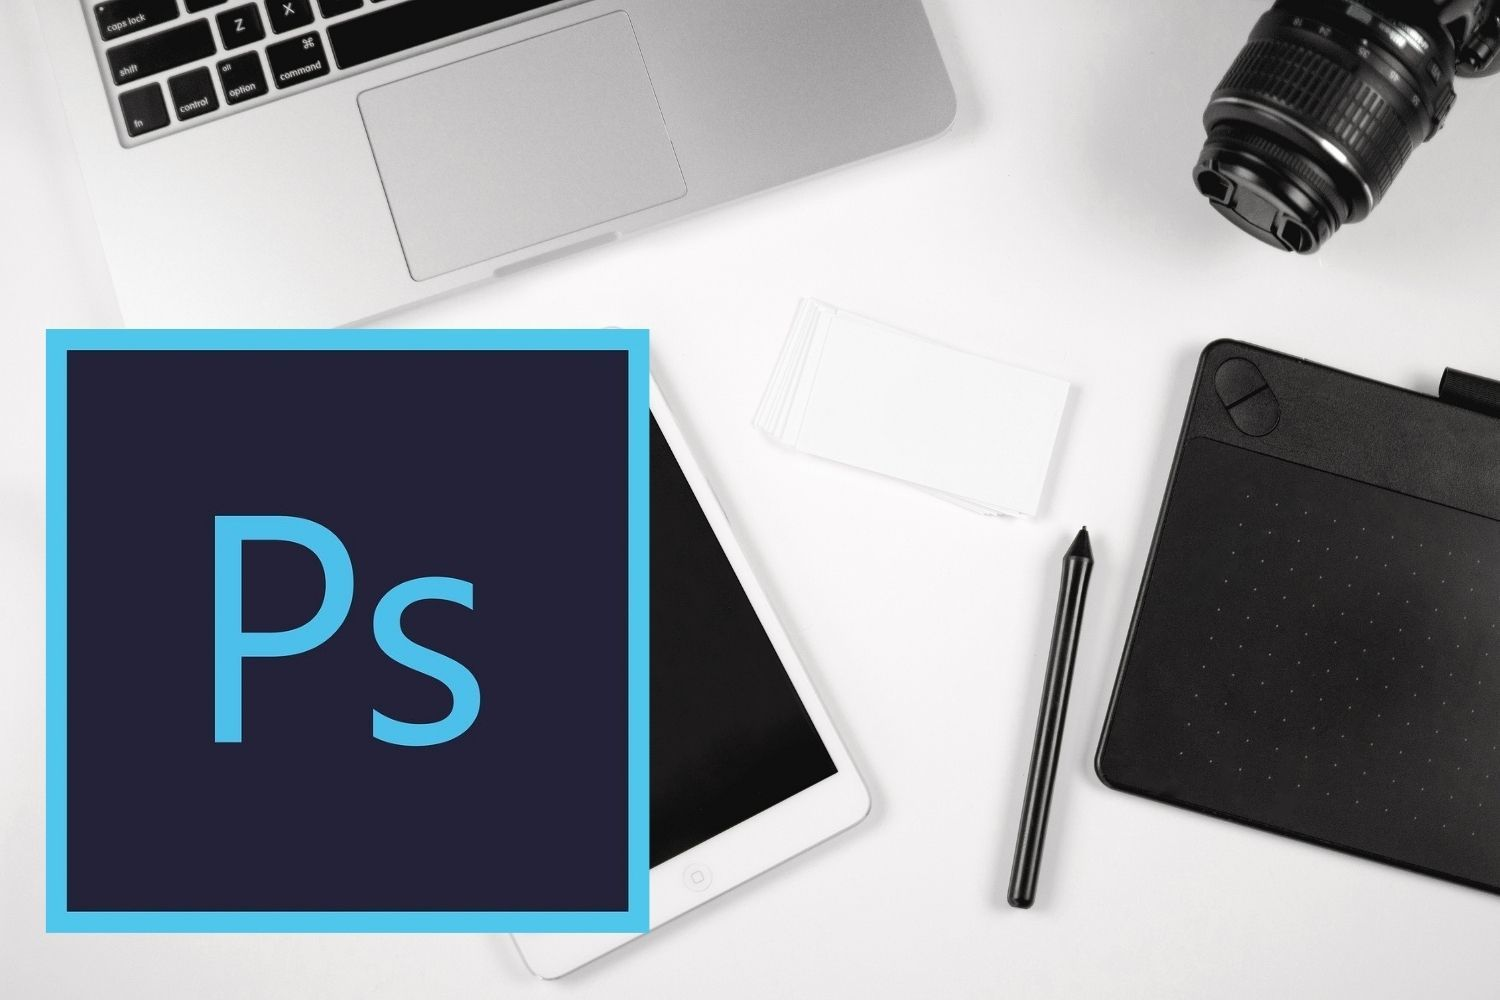 Master Adobe Photoshop for graphic design, photography, retouching, digital painting and illustration, and animation.